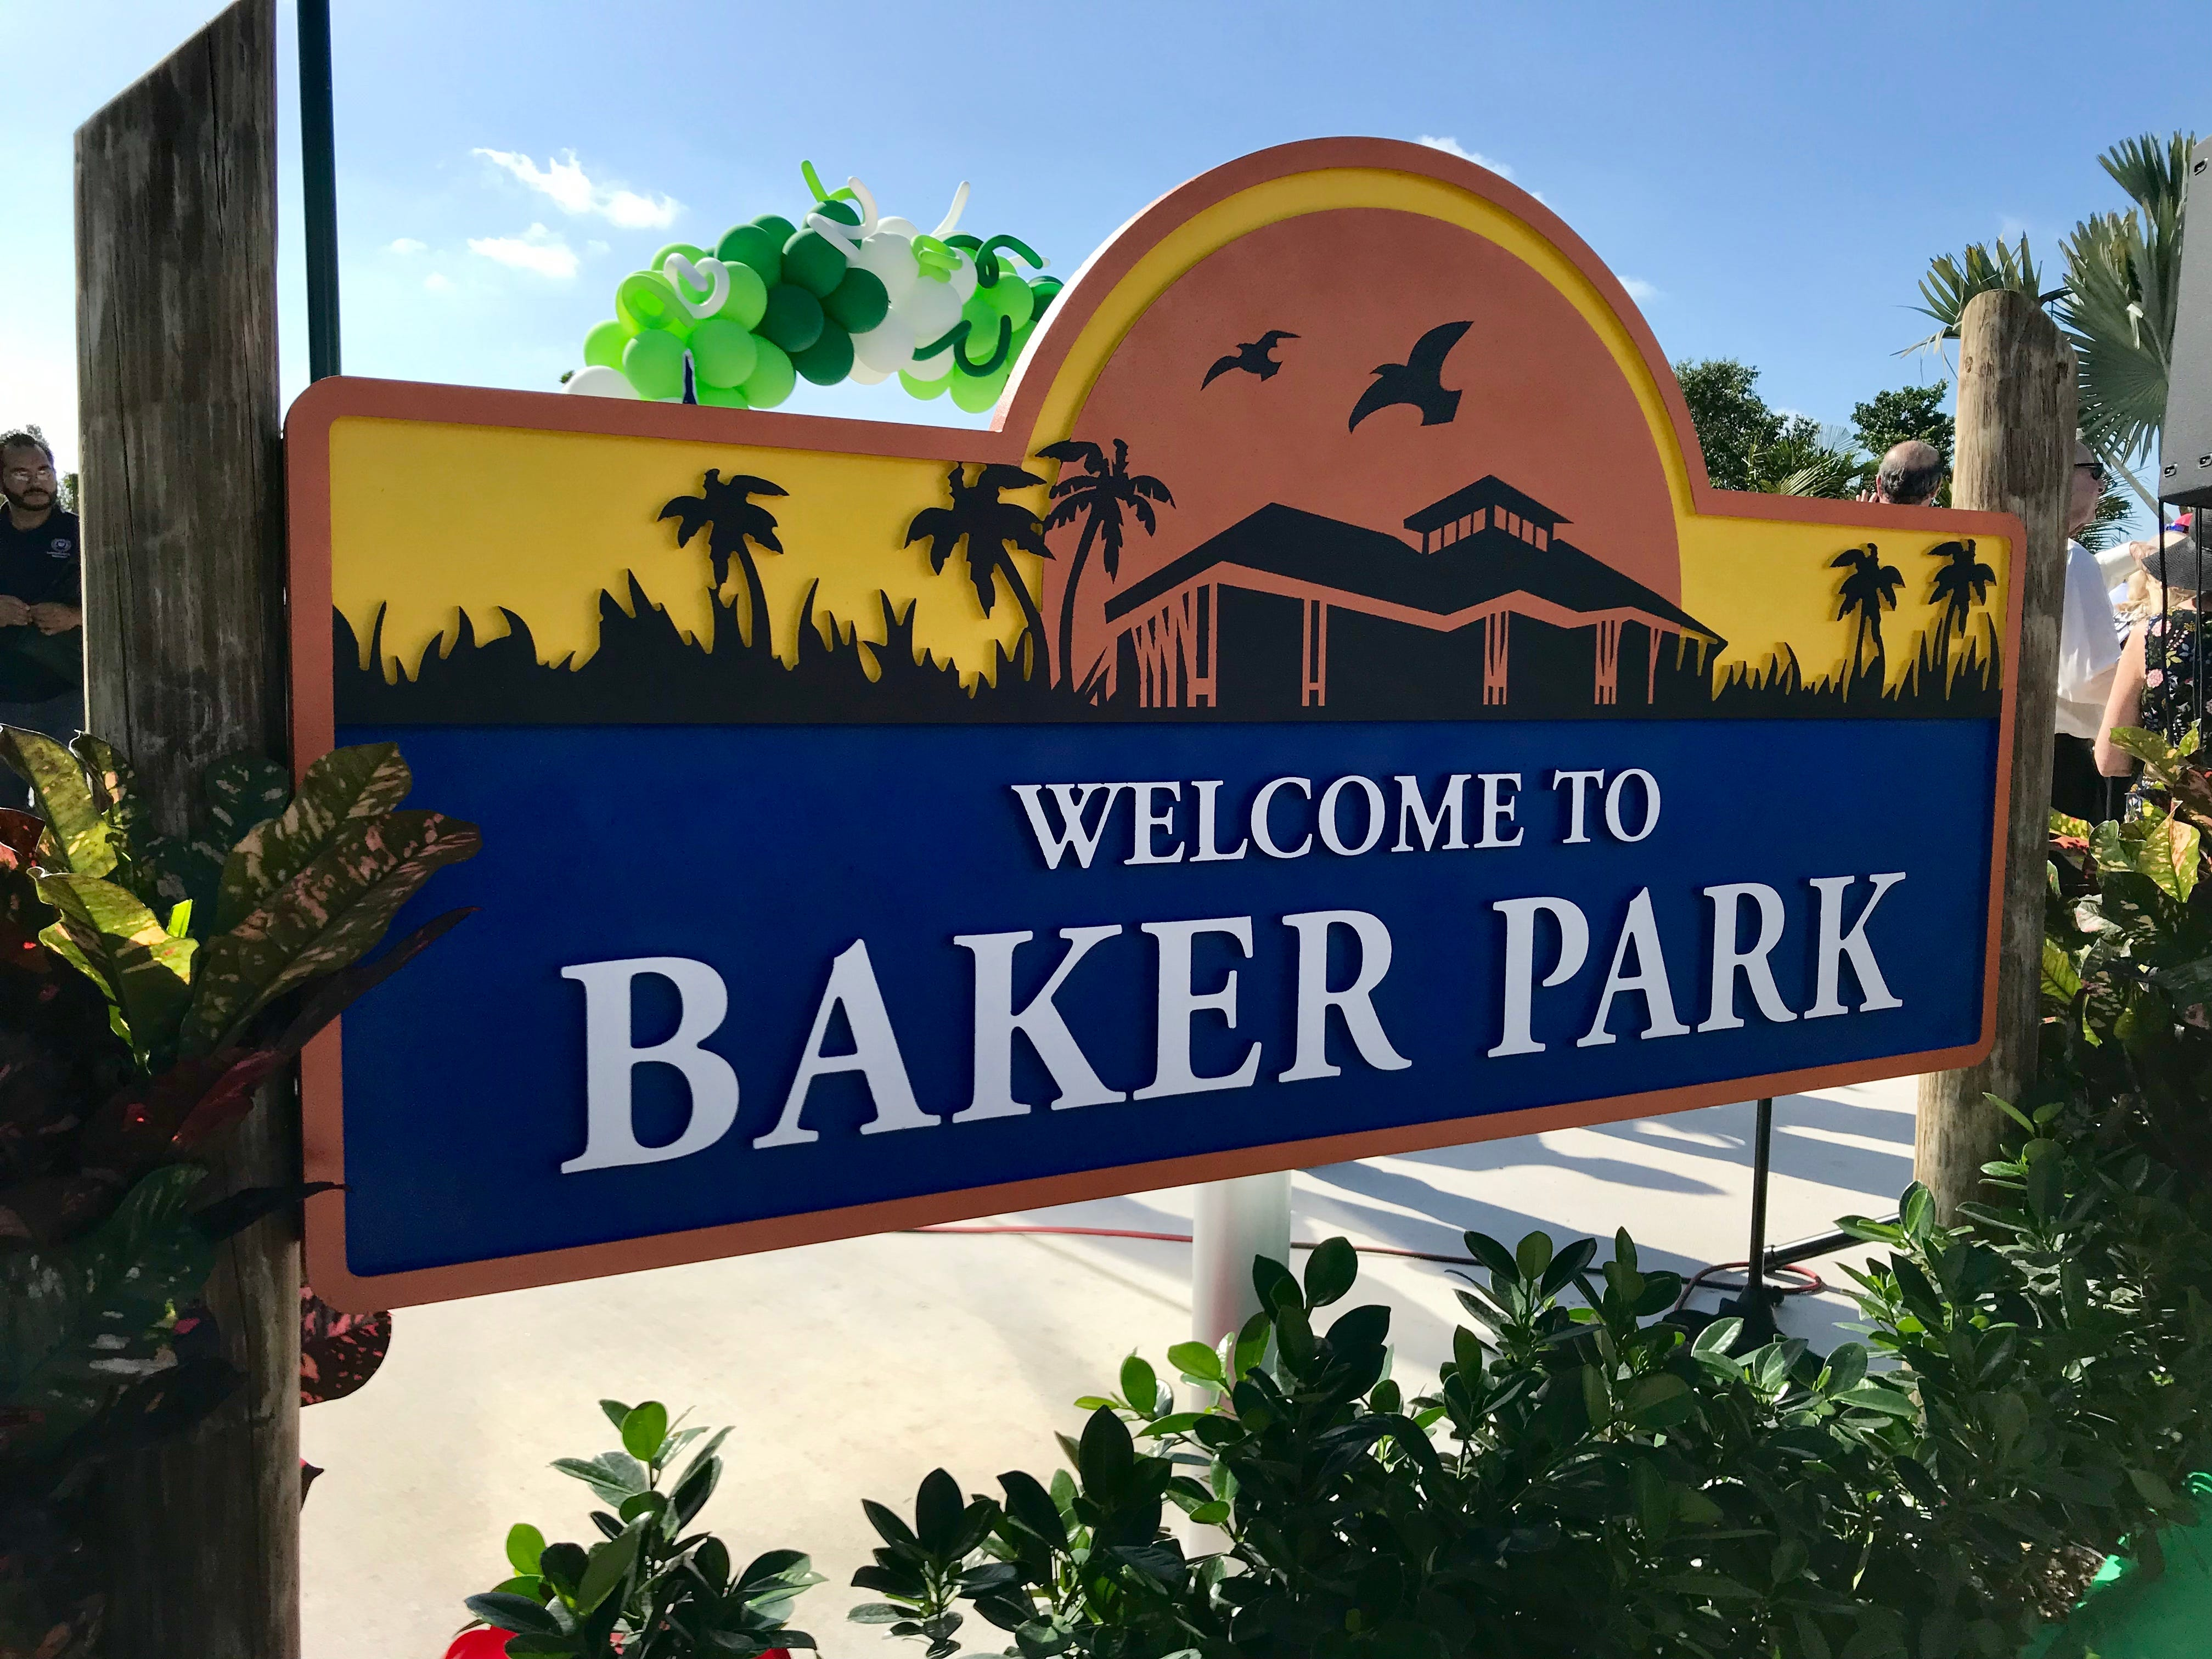 The first portion of Baker Park opened on March 14, 2019. The rest of the park is set to open in October.